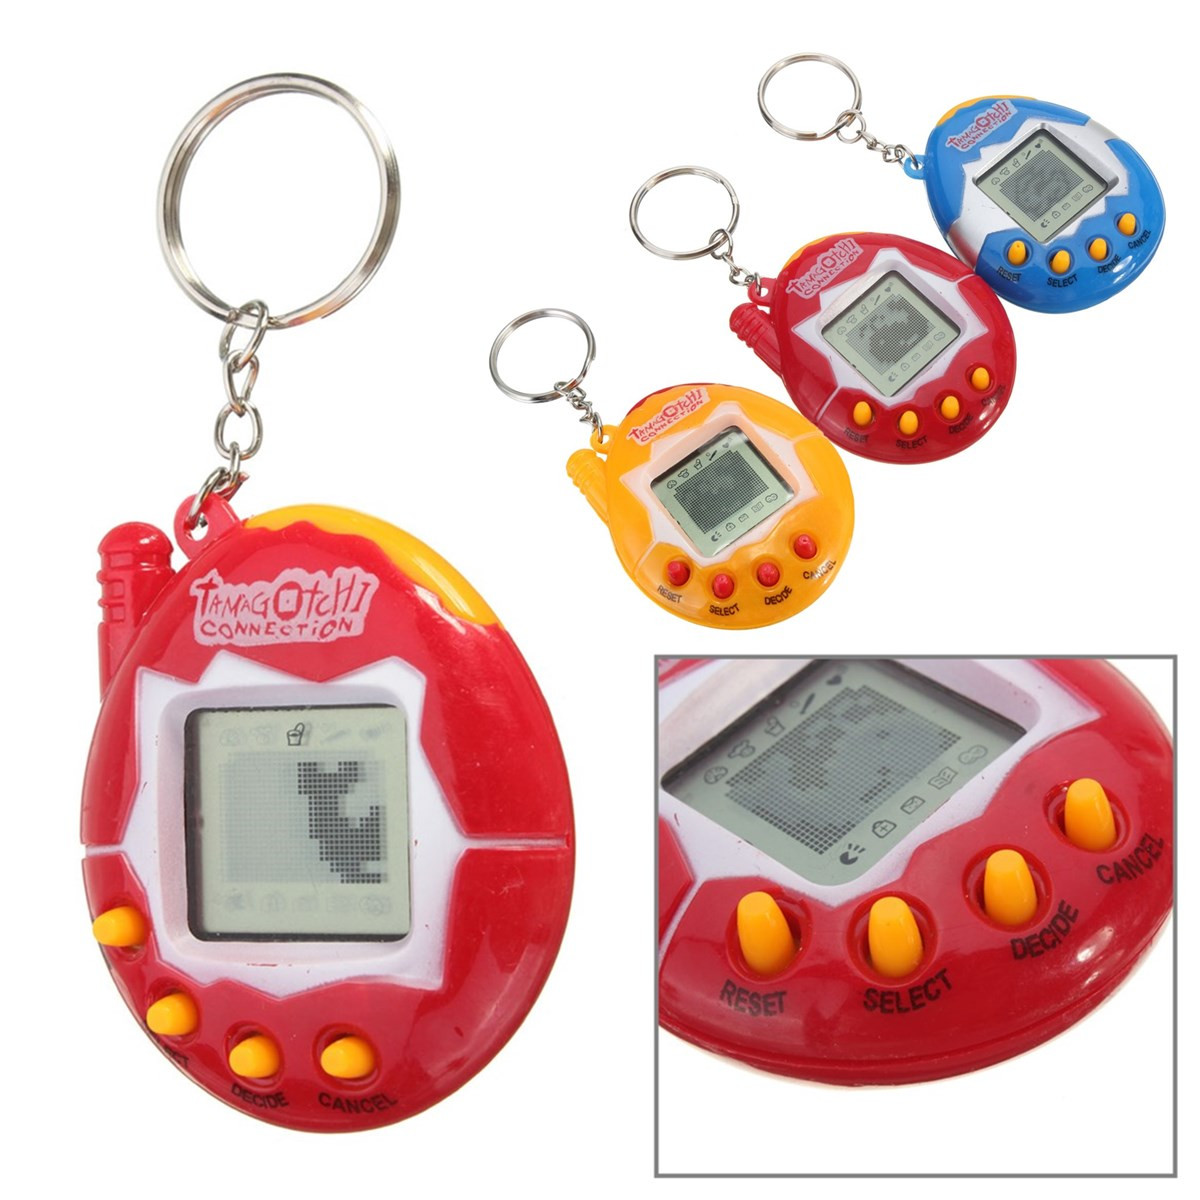 Retro Virtual Pet 49 In 1 Cyber Pets Animals Toy Funny Tamagotchi Kids Gift New (Eachine1) Chicago объявления о покупке